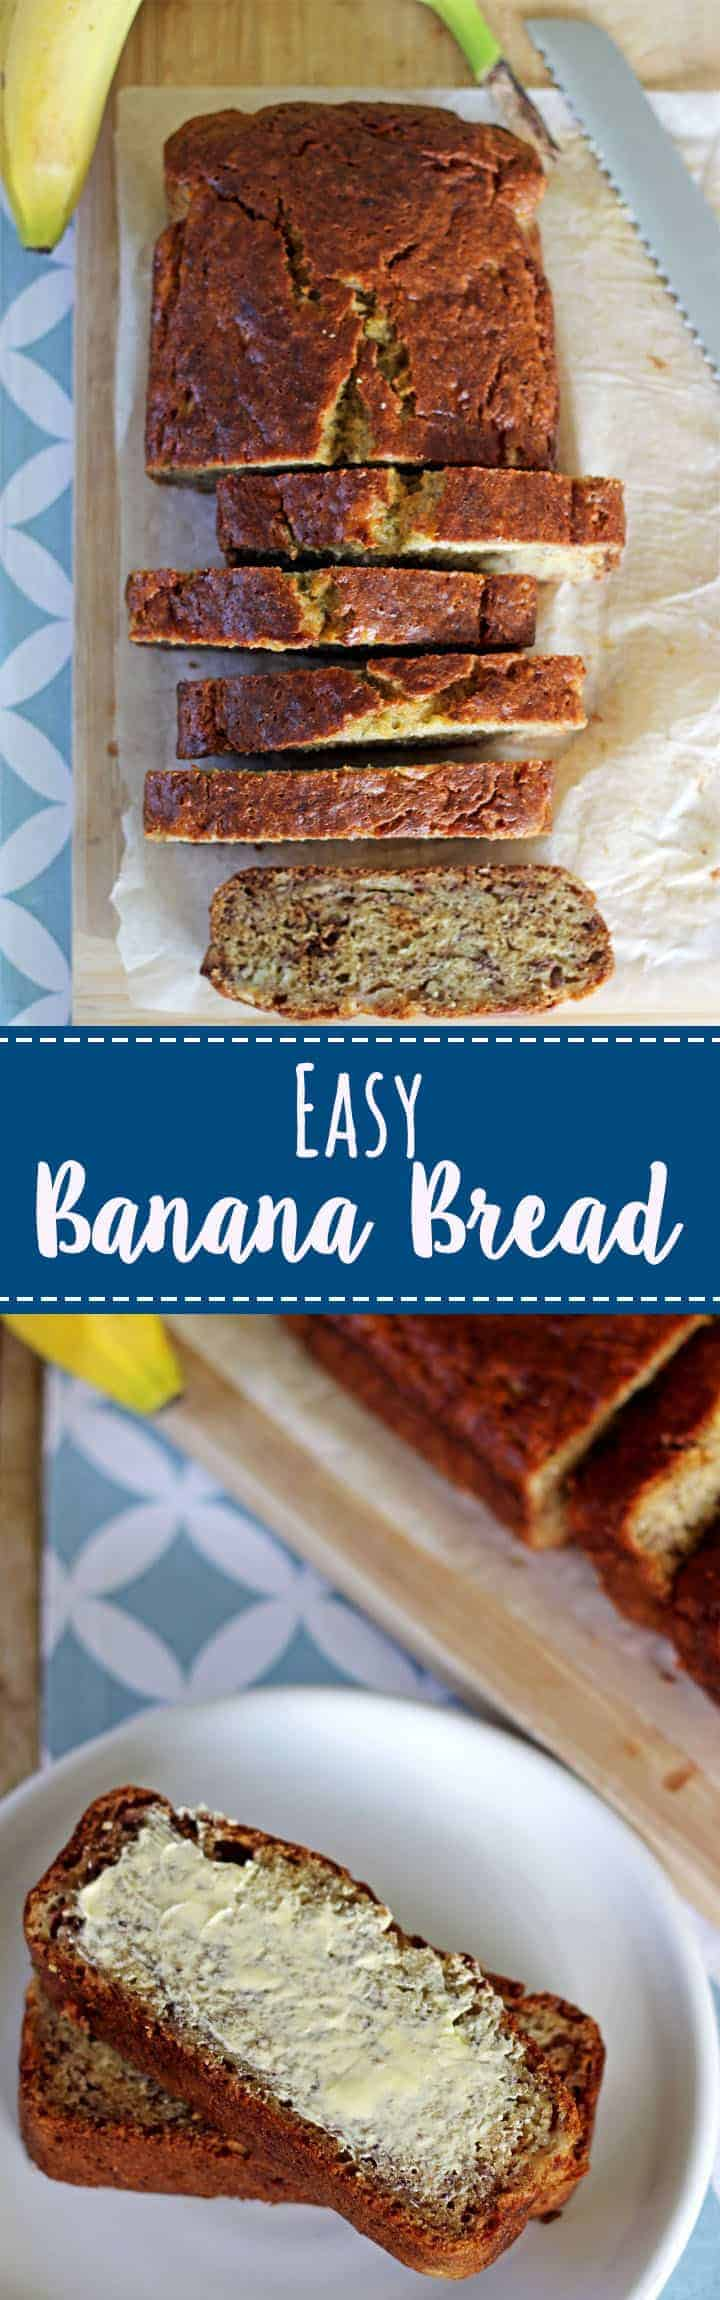 Classic easy banana bread recipe made in 1 bowl, and is ready to eat in 1 hour! | recipe at thekiwicountrygirl.com #quickbread #bananabread #baking #easyrecipe #sweetbread #banana #loaf